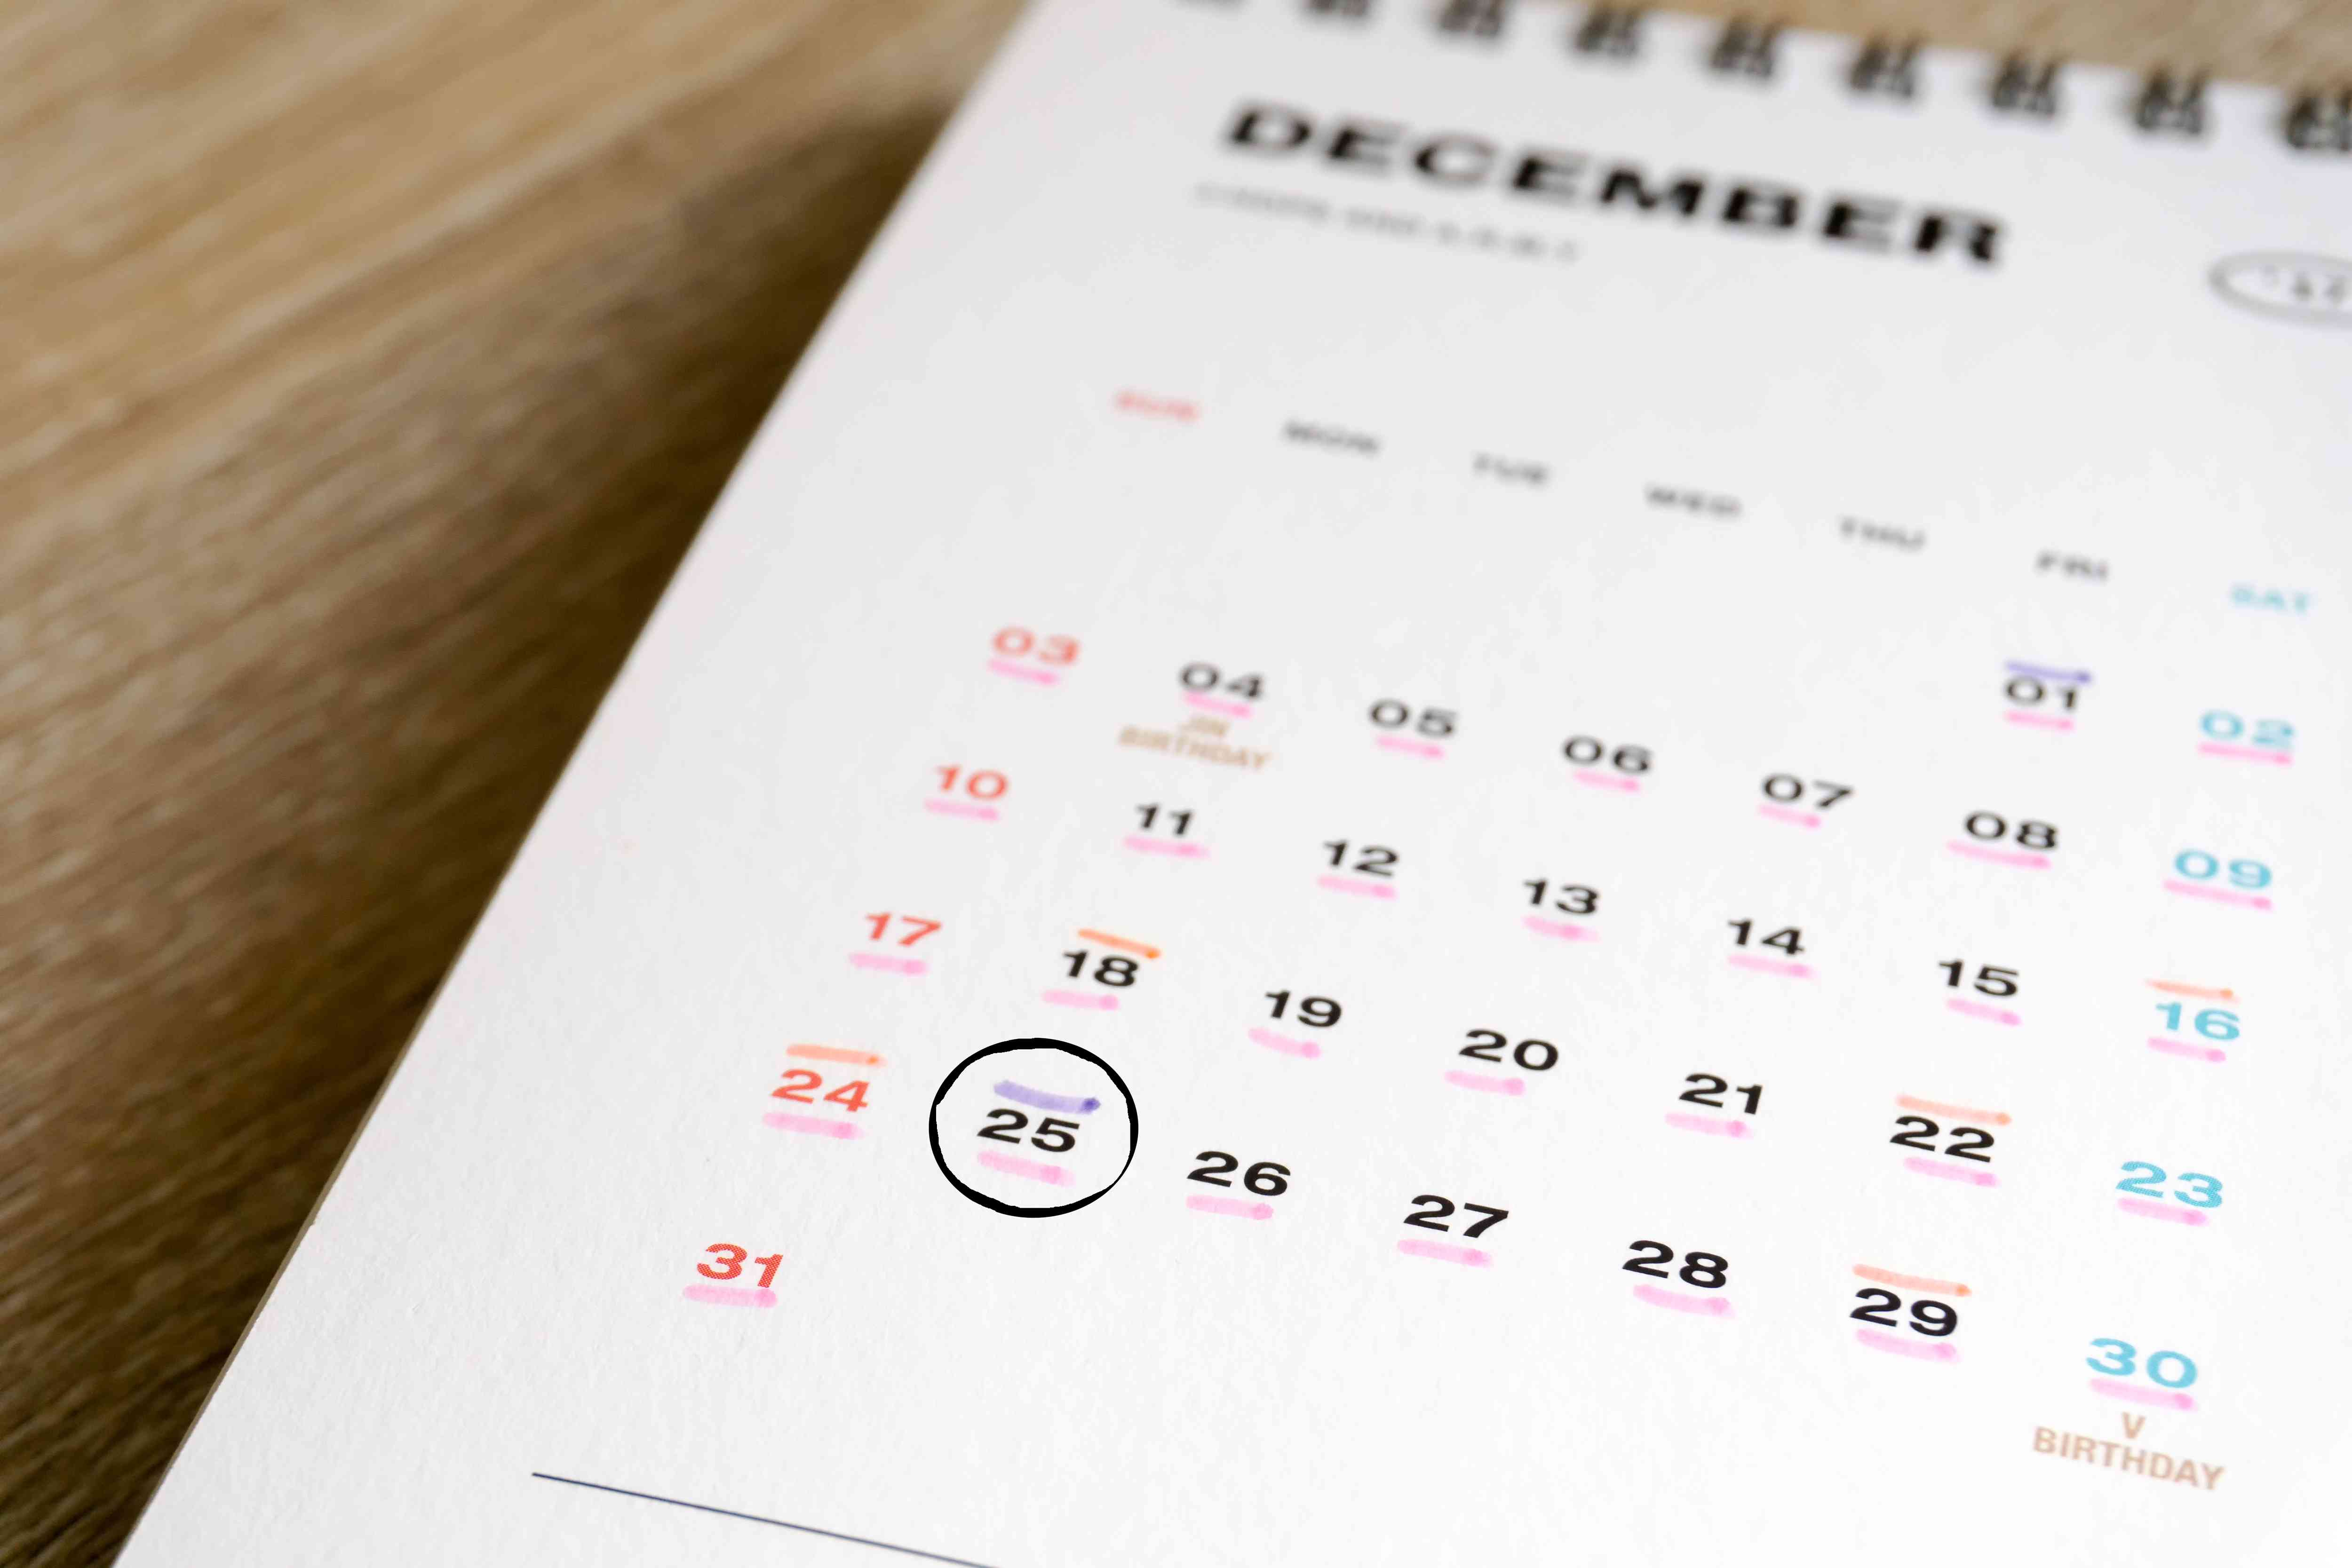 Using a Calendar to schedule days worked